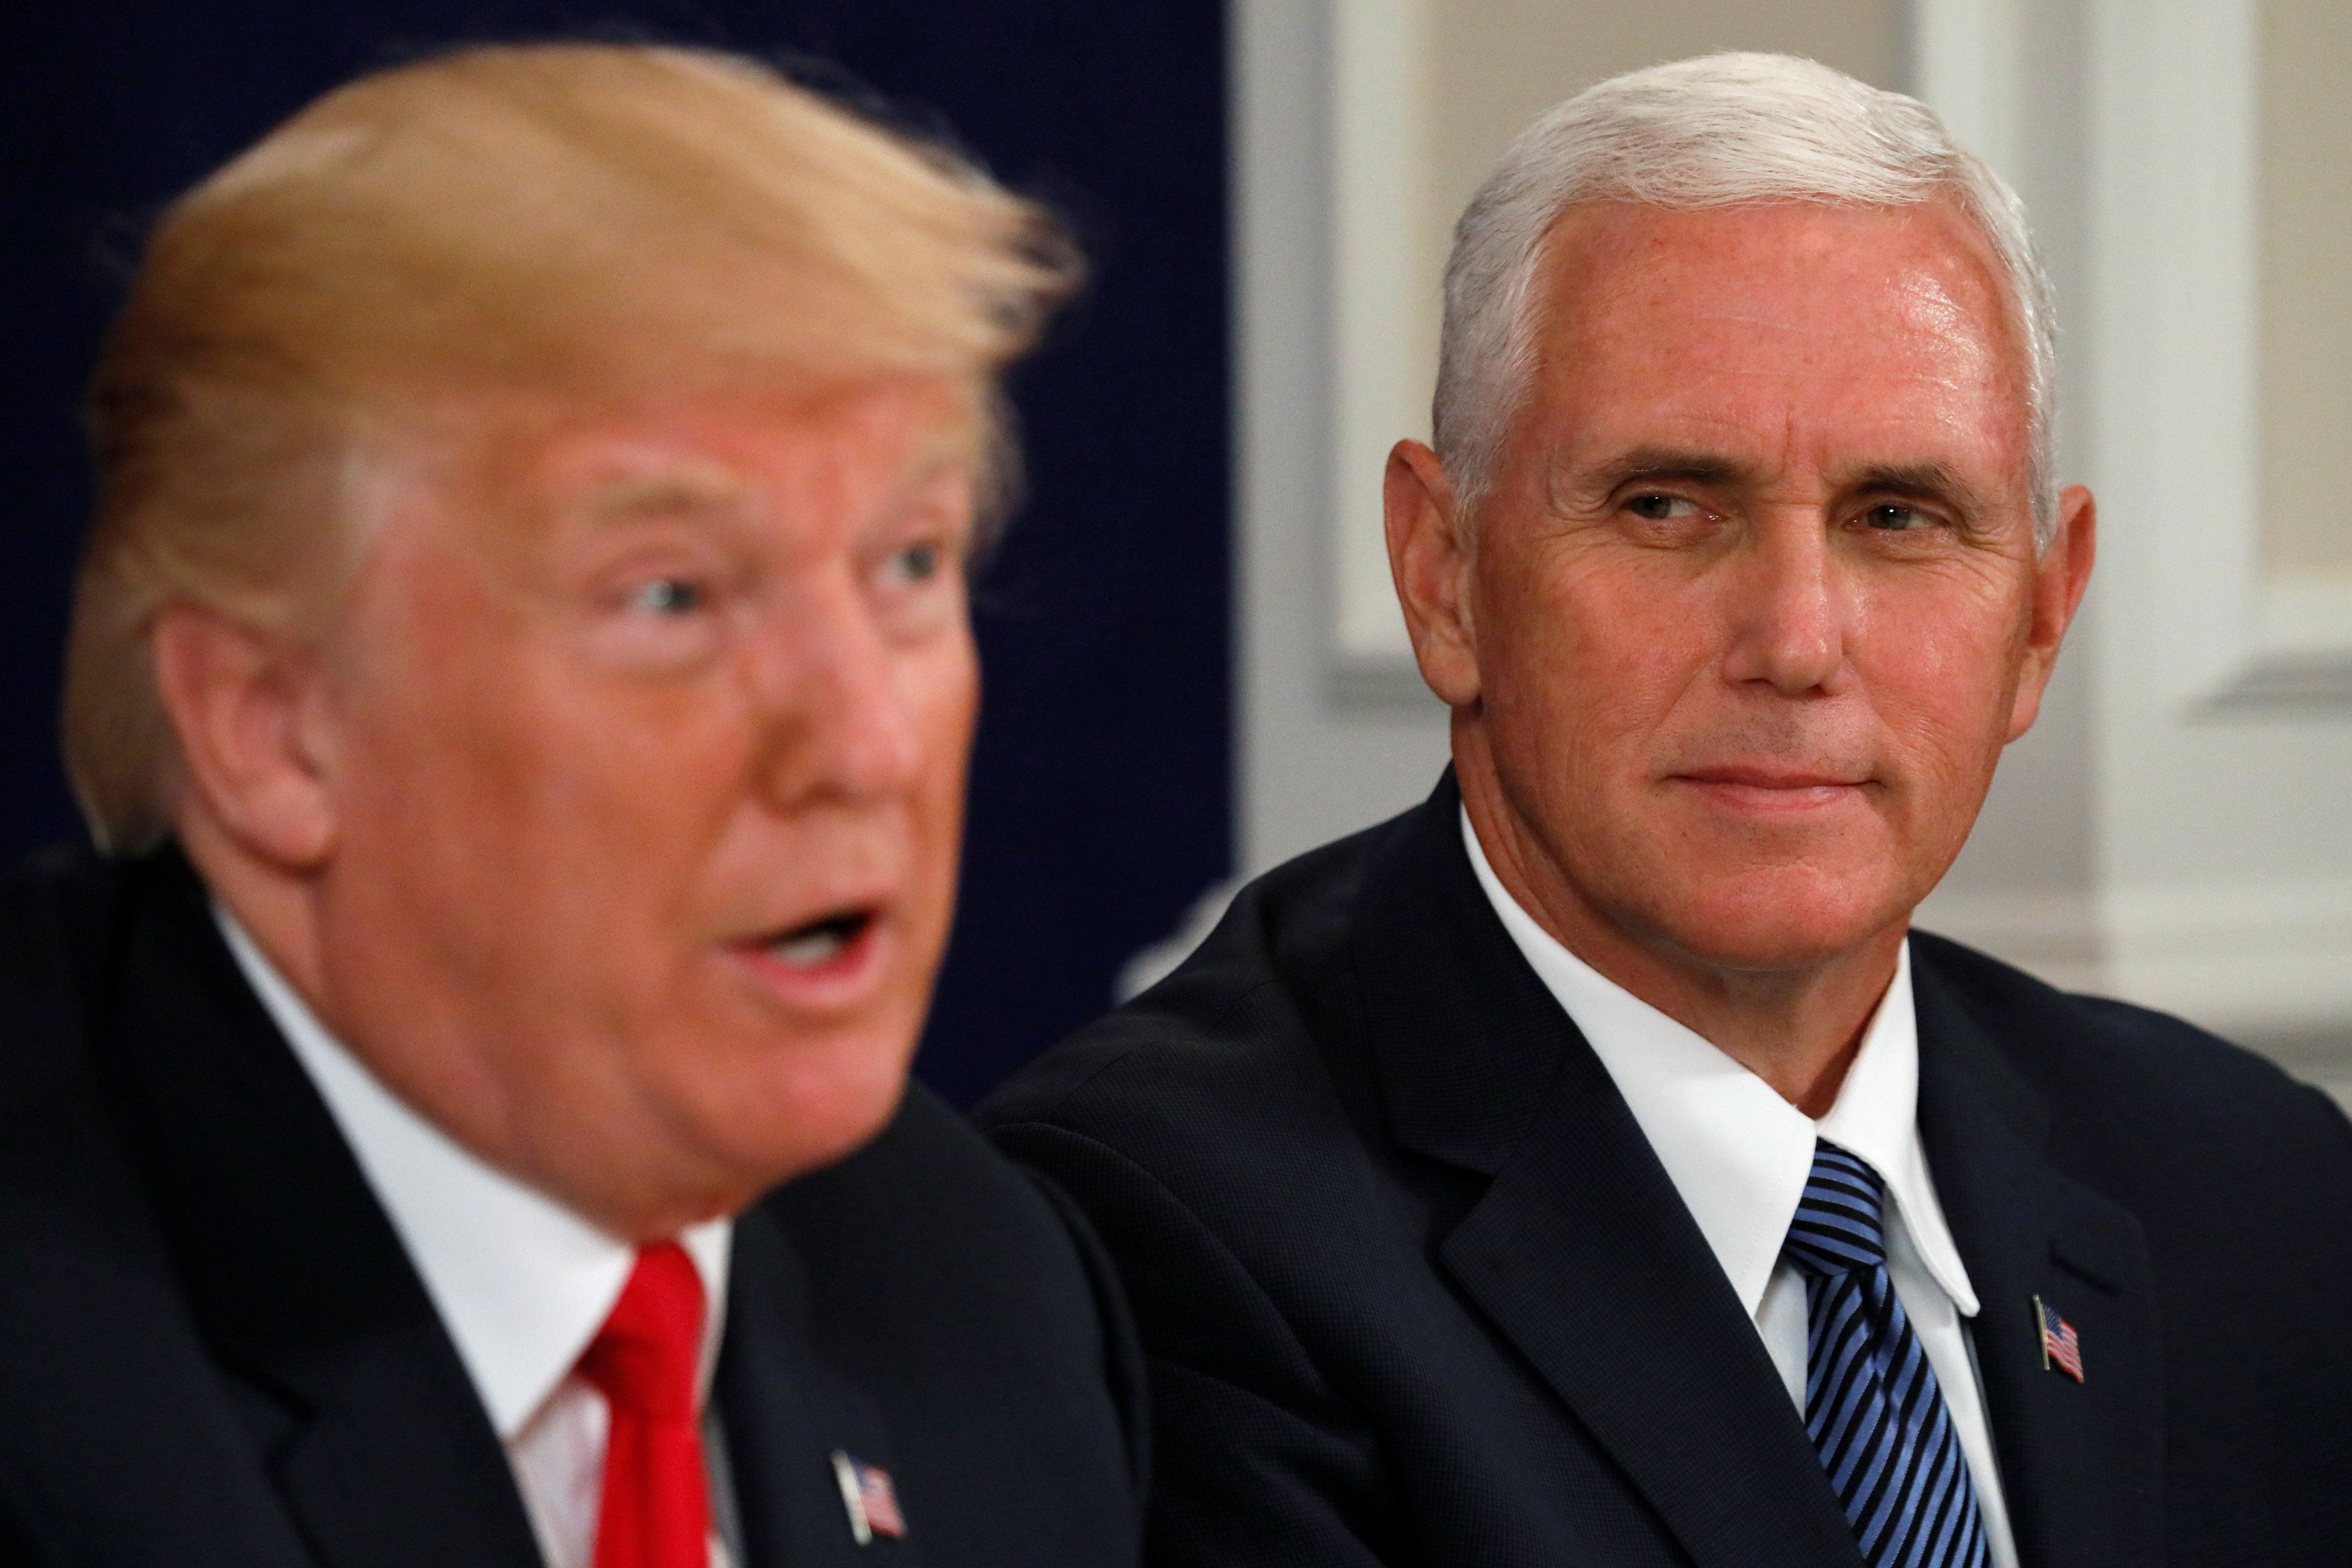 "Vice President <a href=""http://www.huffingtonpost.com/topic/mike-pence"">Mike Pence</a> condemned the violence in Ch"